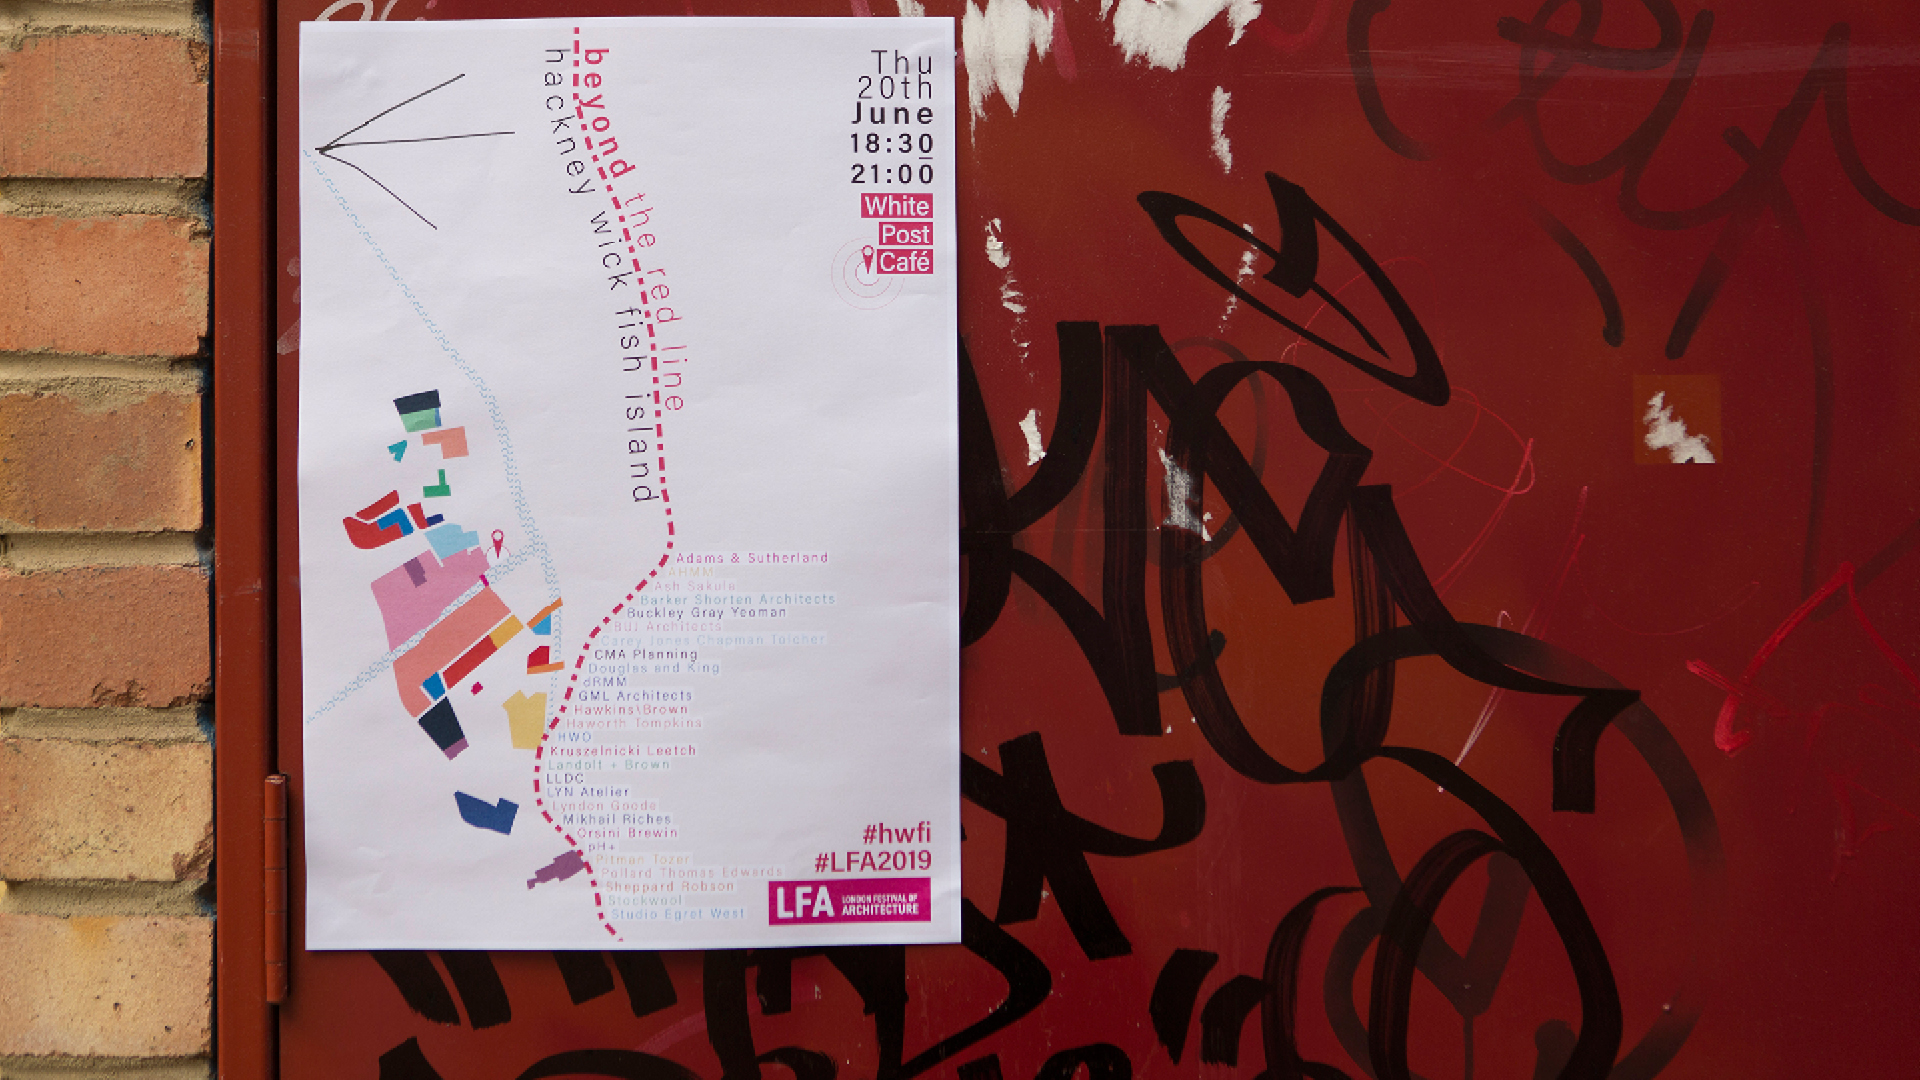 Does Hackney Wick Fish Island, London, go beyond the red line?